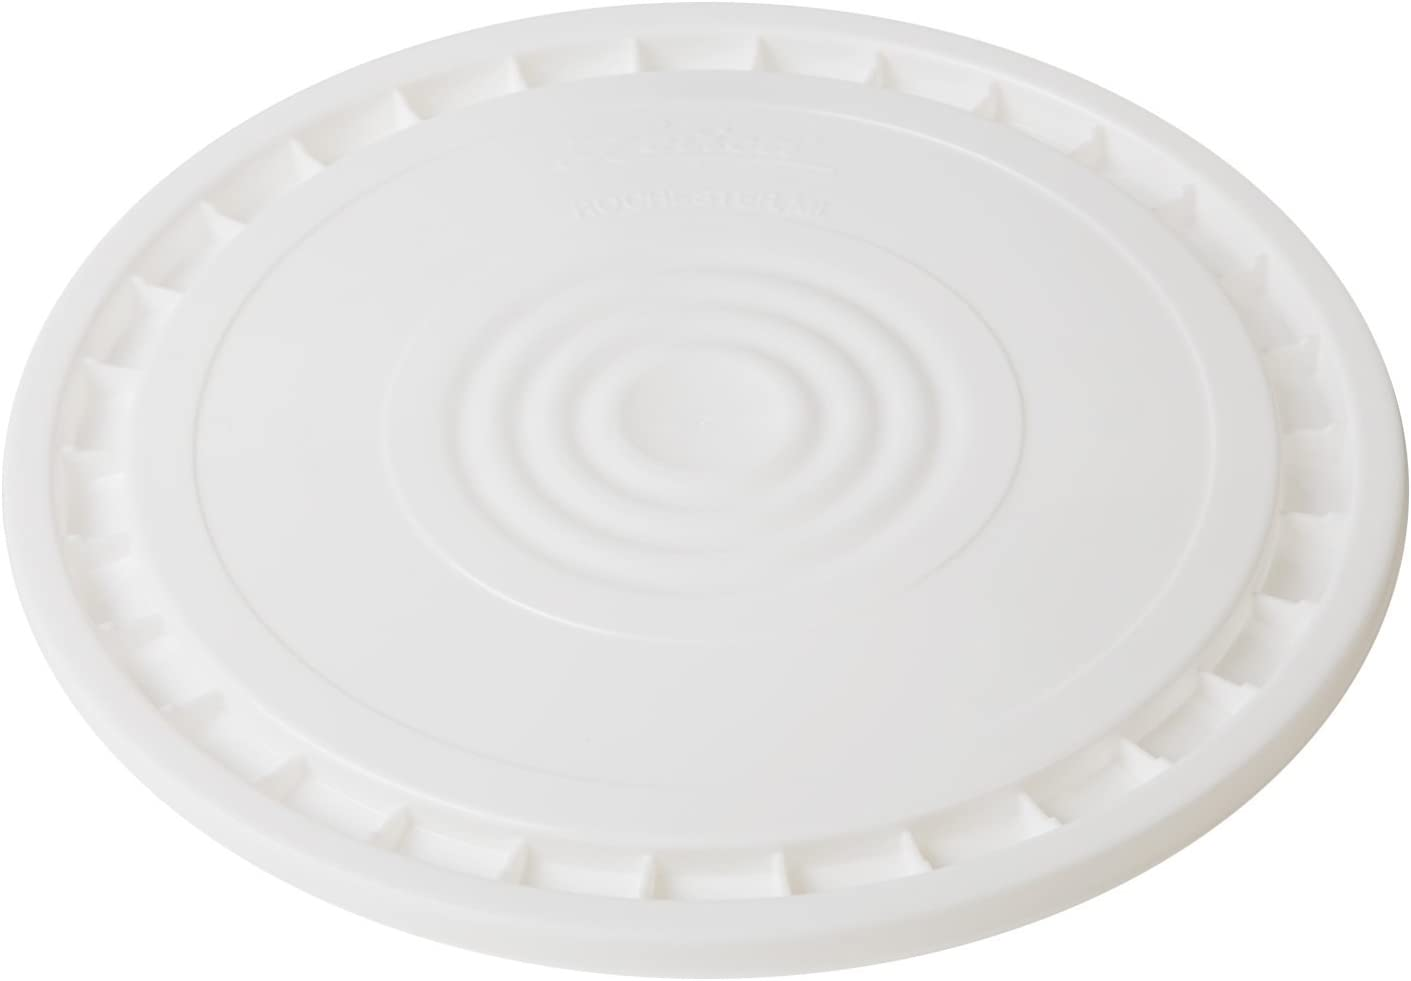 Hudson Exchange Reusable Easy Peel Lid for 3.5, 5, 6, and 7 gal Buckets, HPDE, White